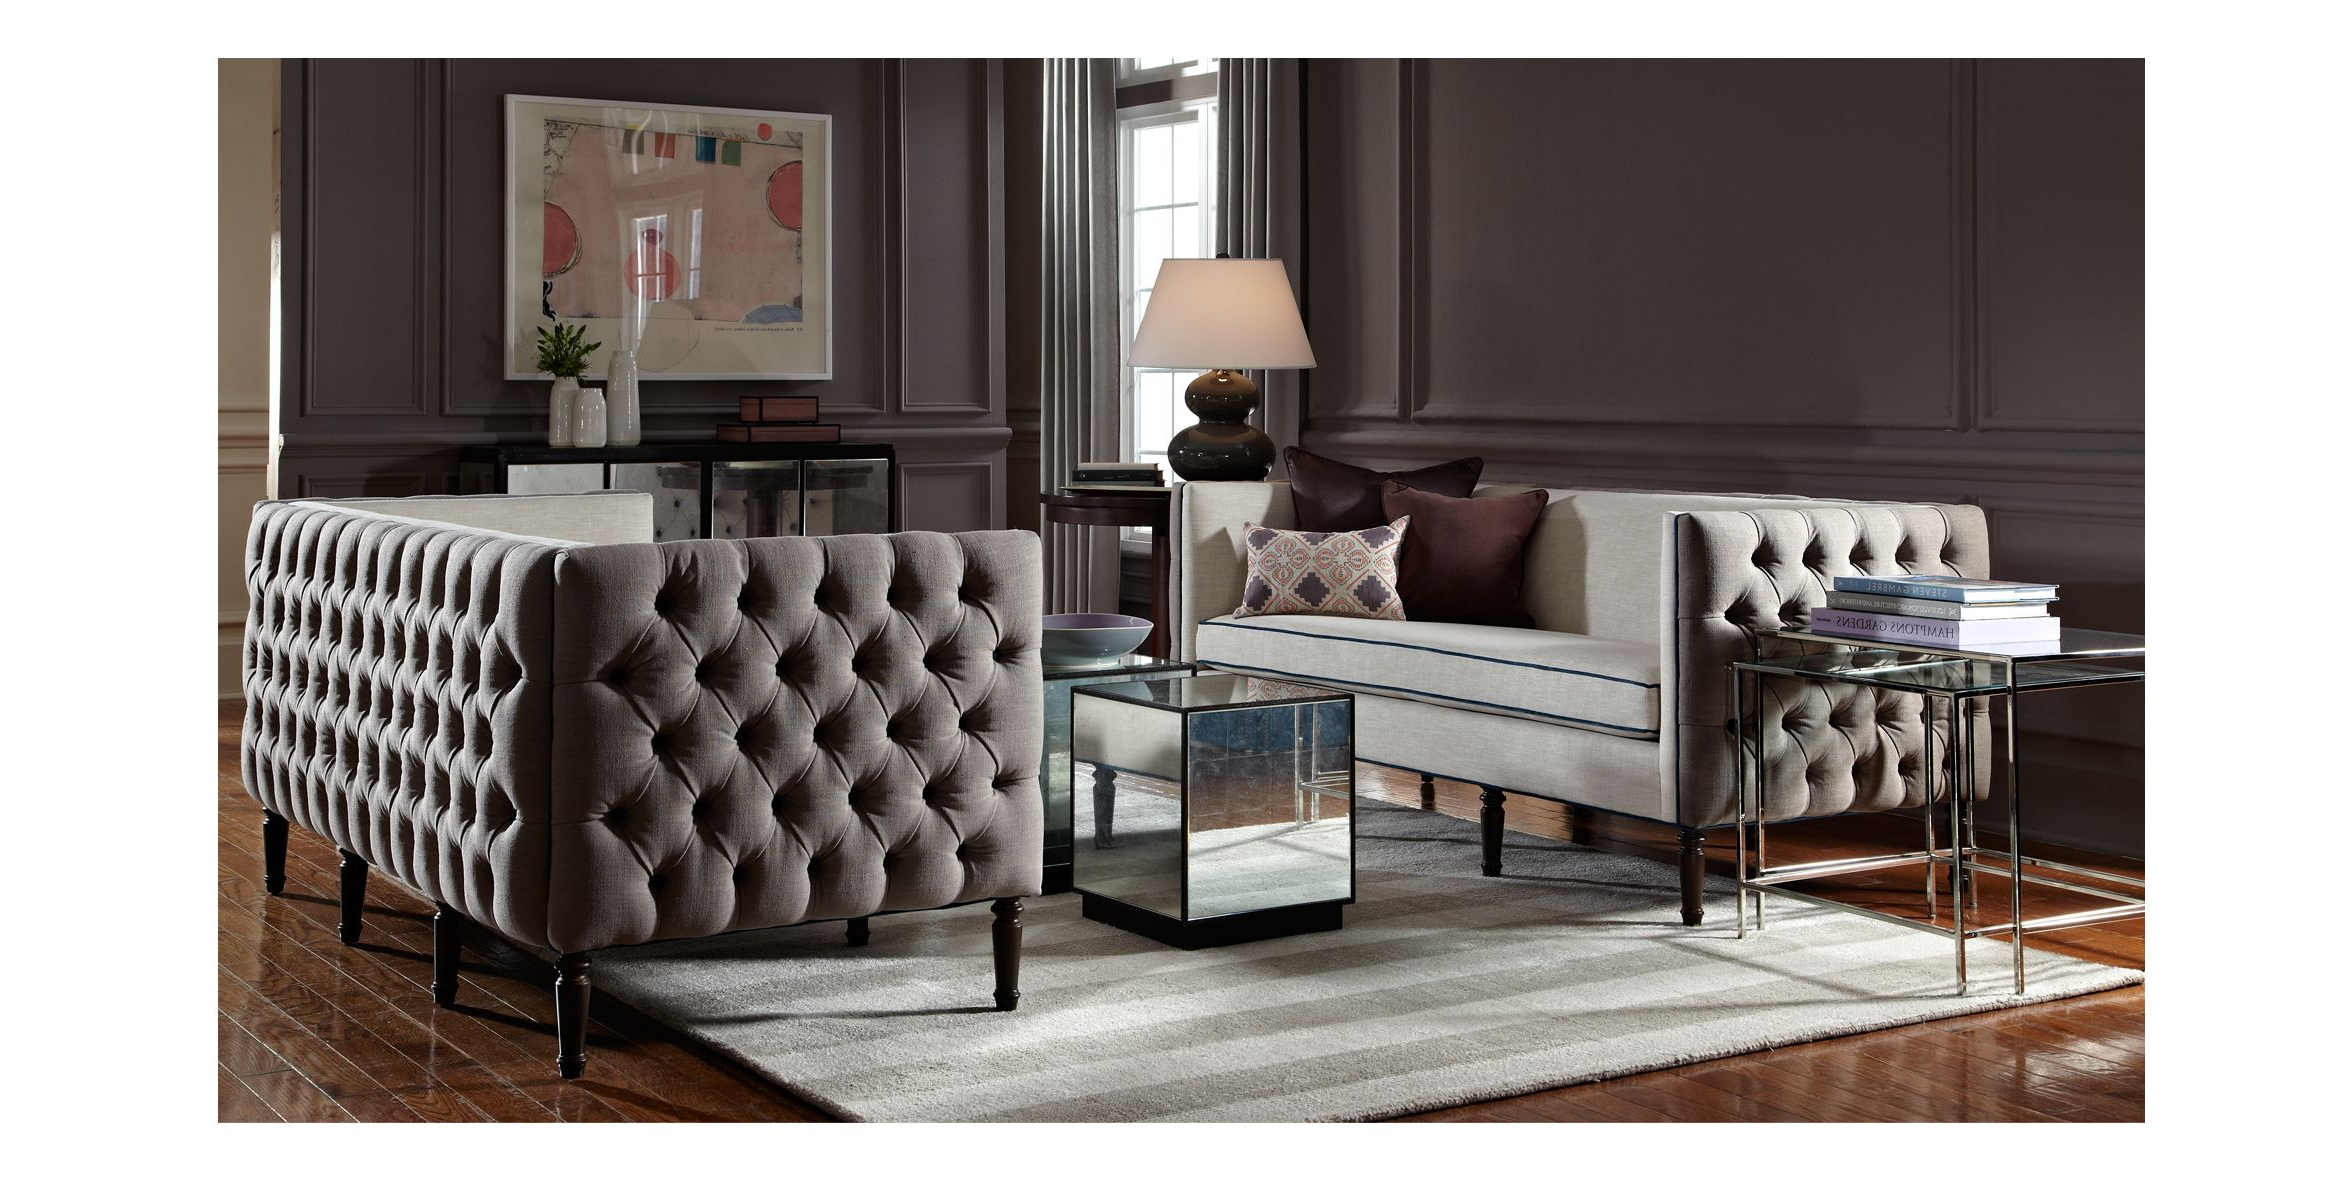 Modern Tufted Sofa – Google Search | Turn Of The Century Moderne Intended For Parsons Travertine Top & Brass Base 48X16 Console Tables (Gallery 15 of 20)